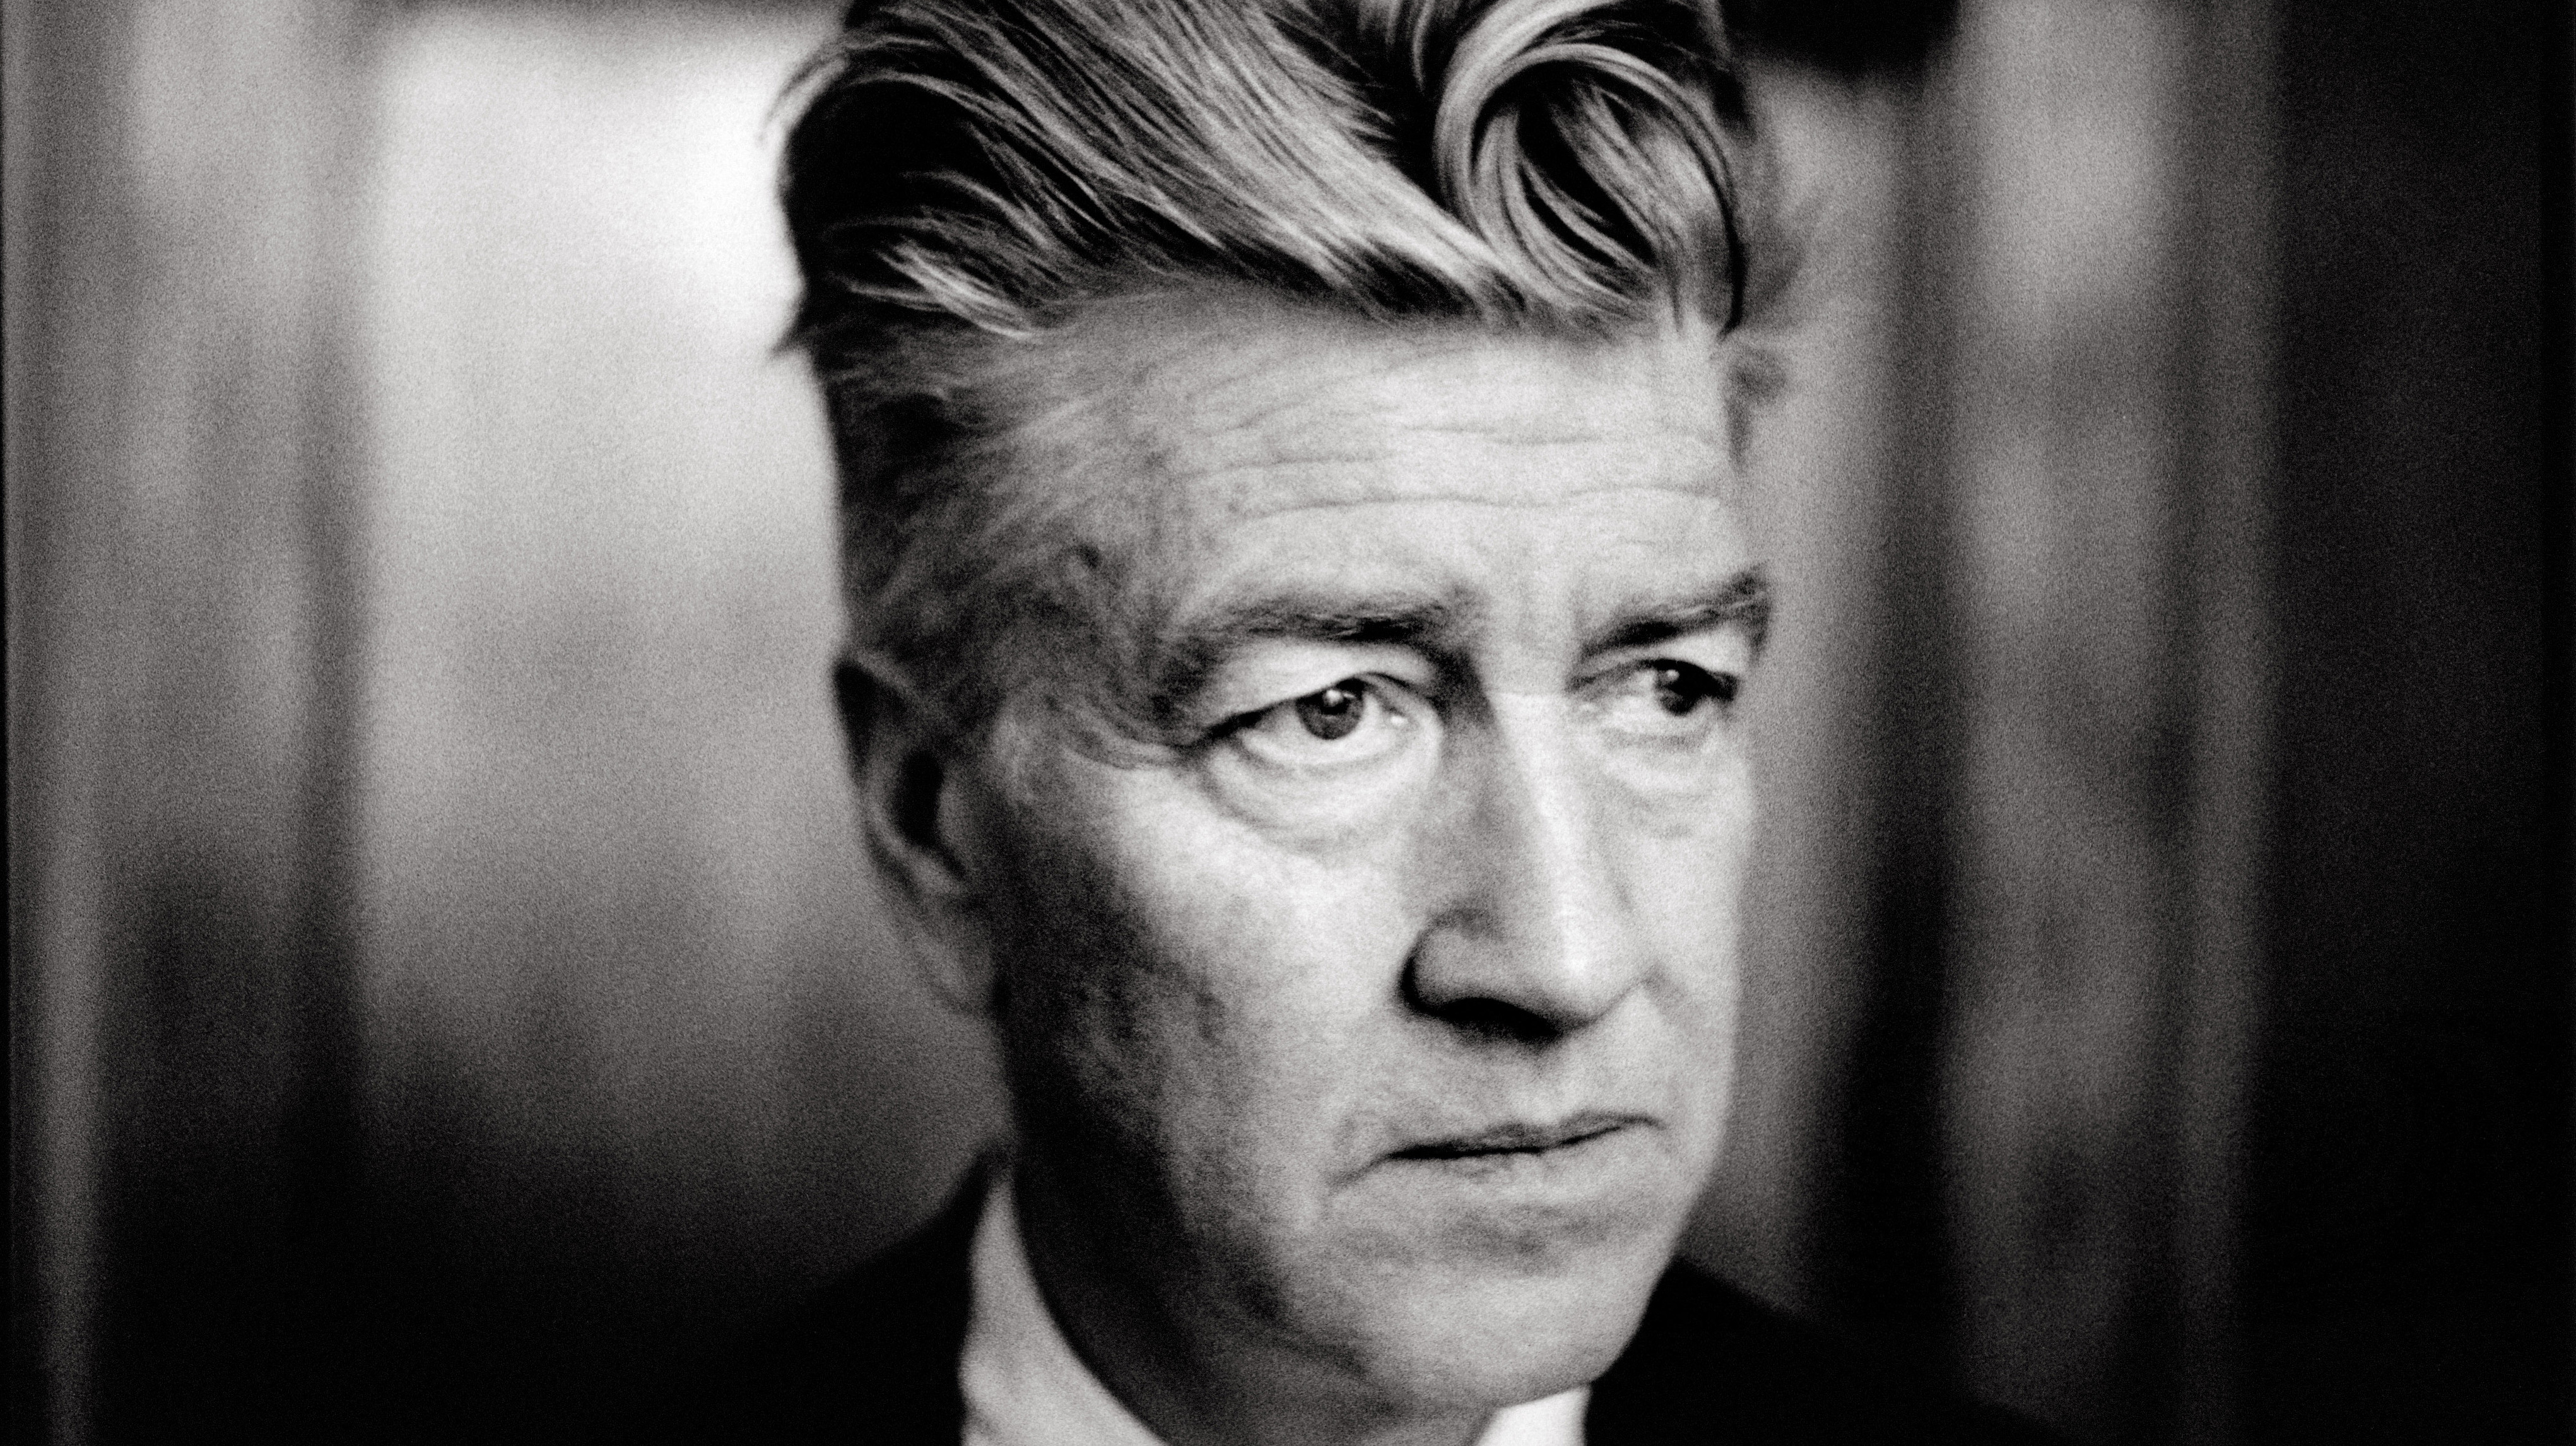 David Lynch Biography - American Director